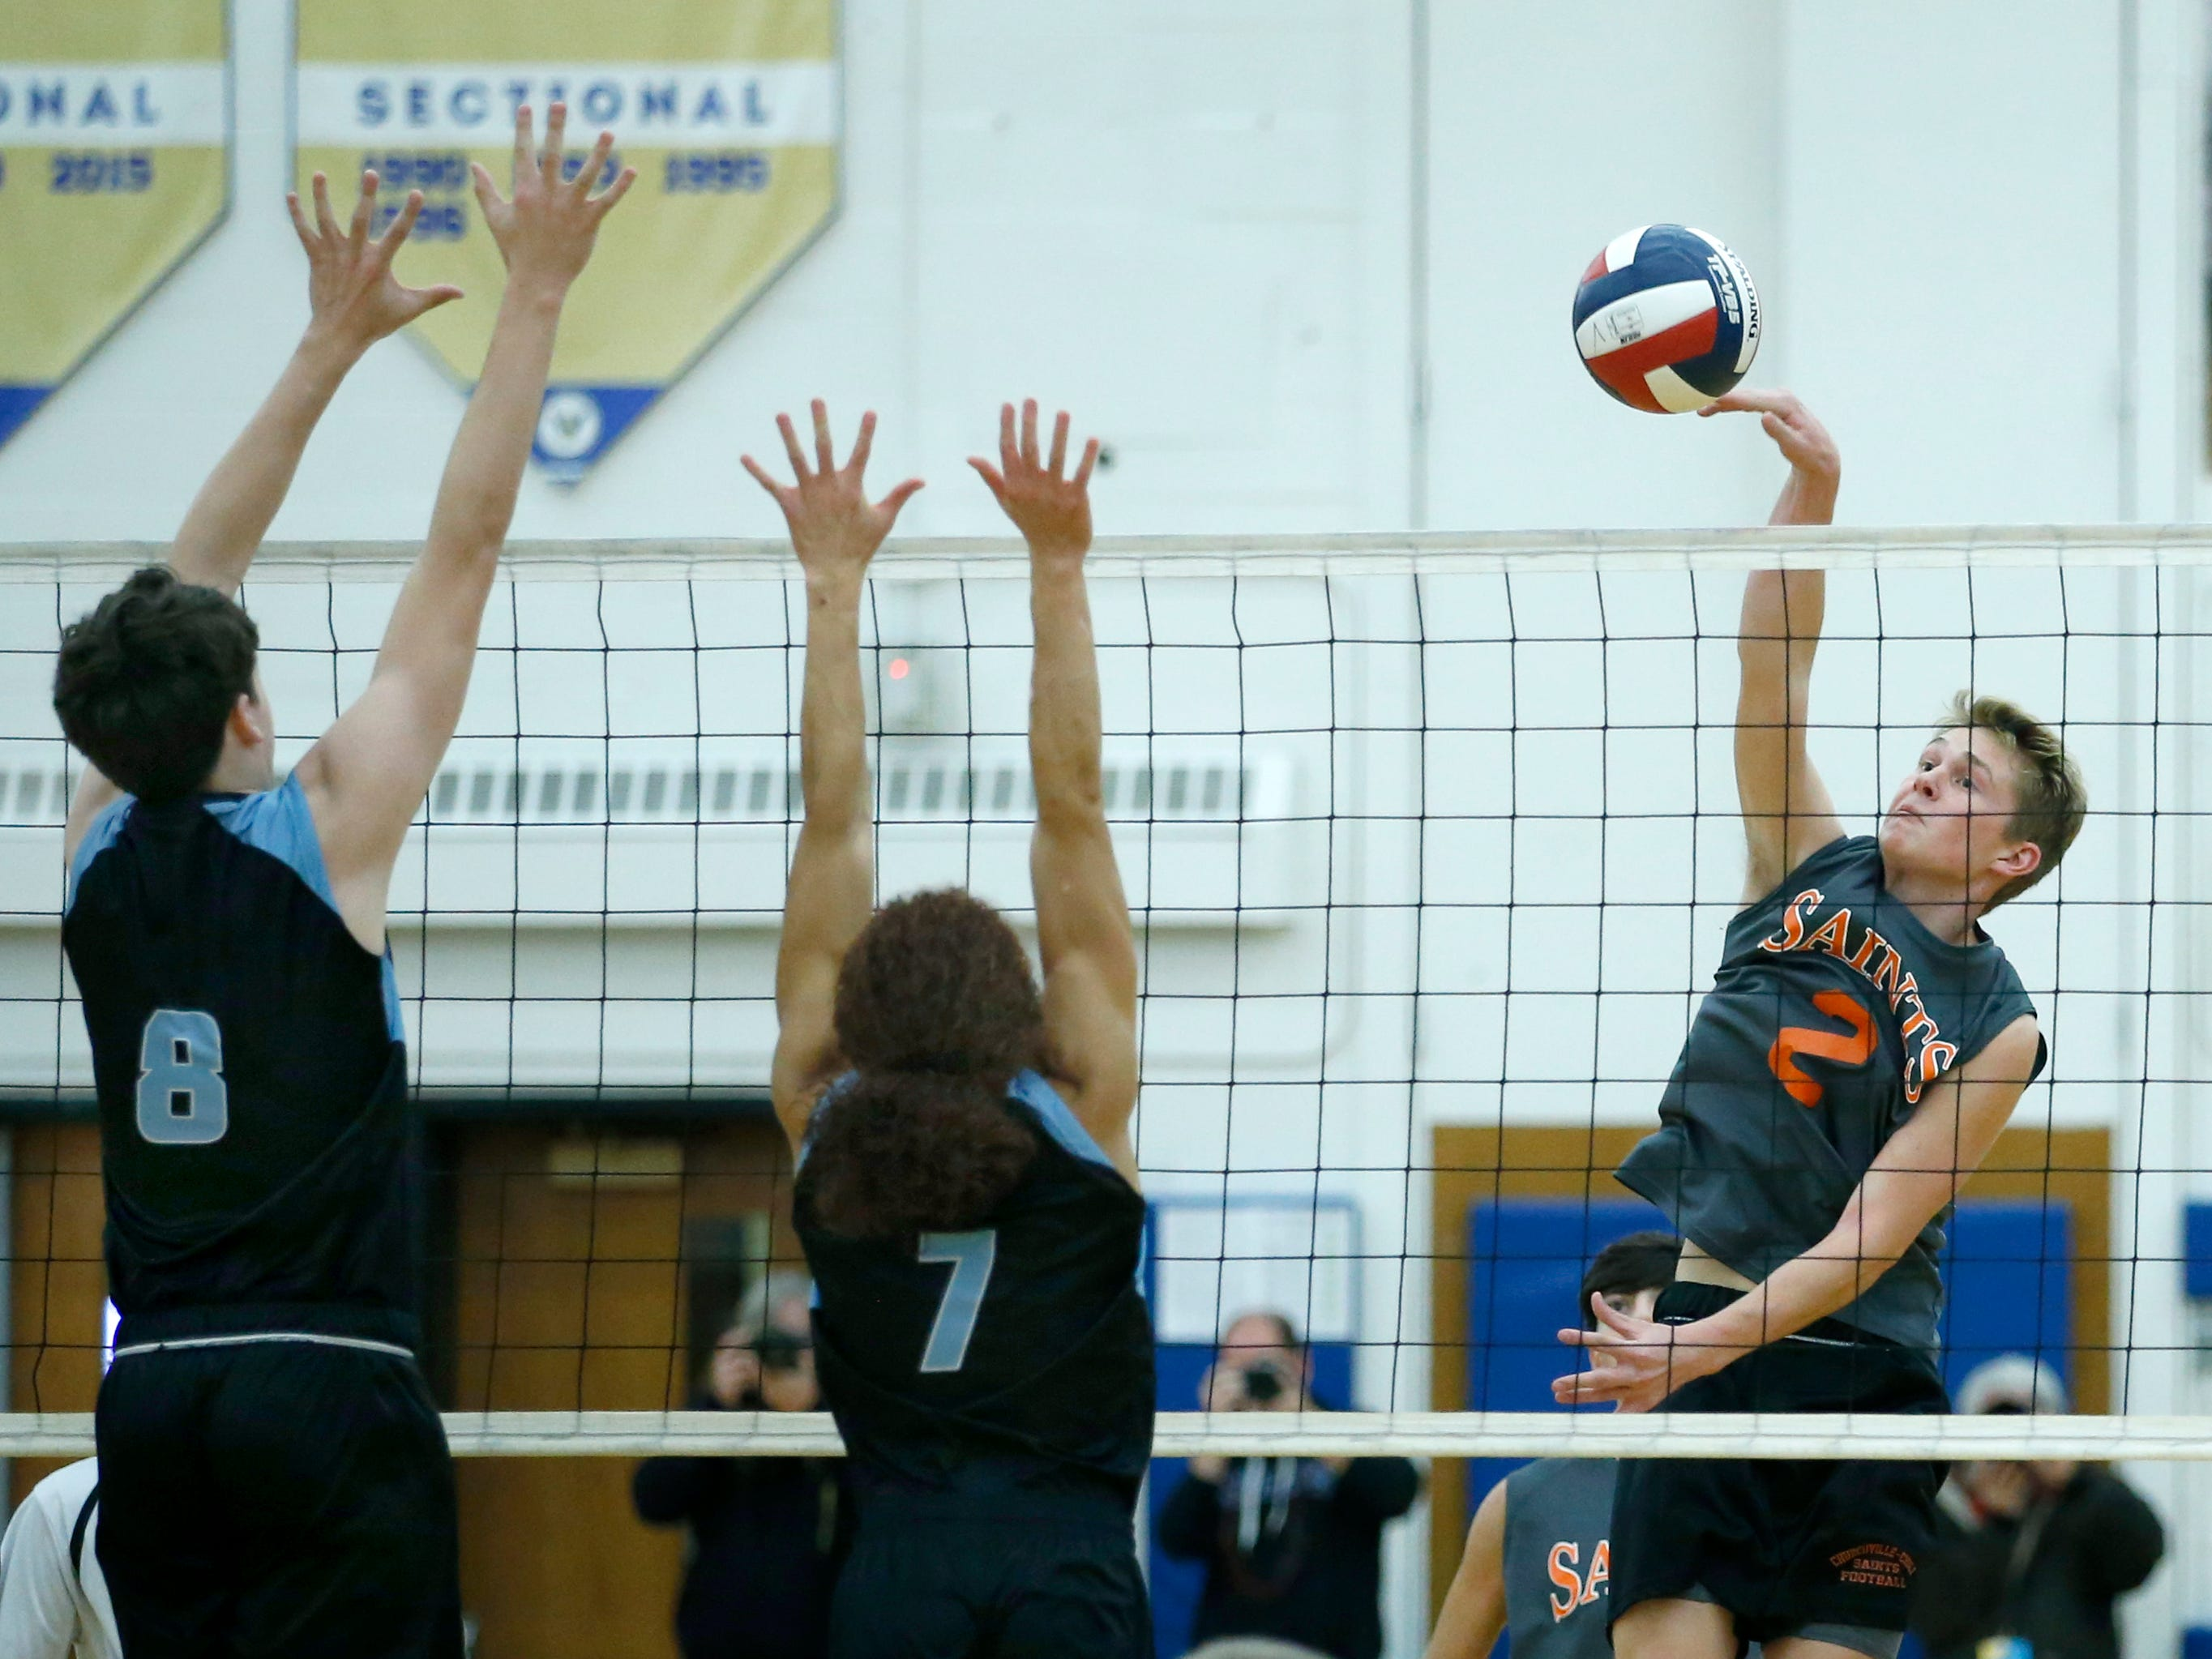 Class B volleyball final: Churchville-Chili's John Keele attacks against Midlakes' Kyle McCann and Isaiah Delgado in the first set at Webster Schroeder High School.